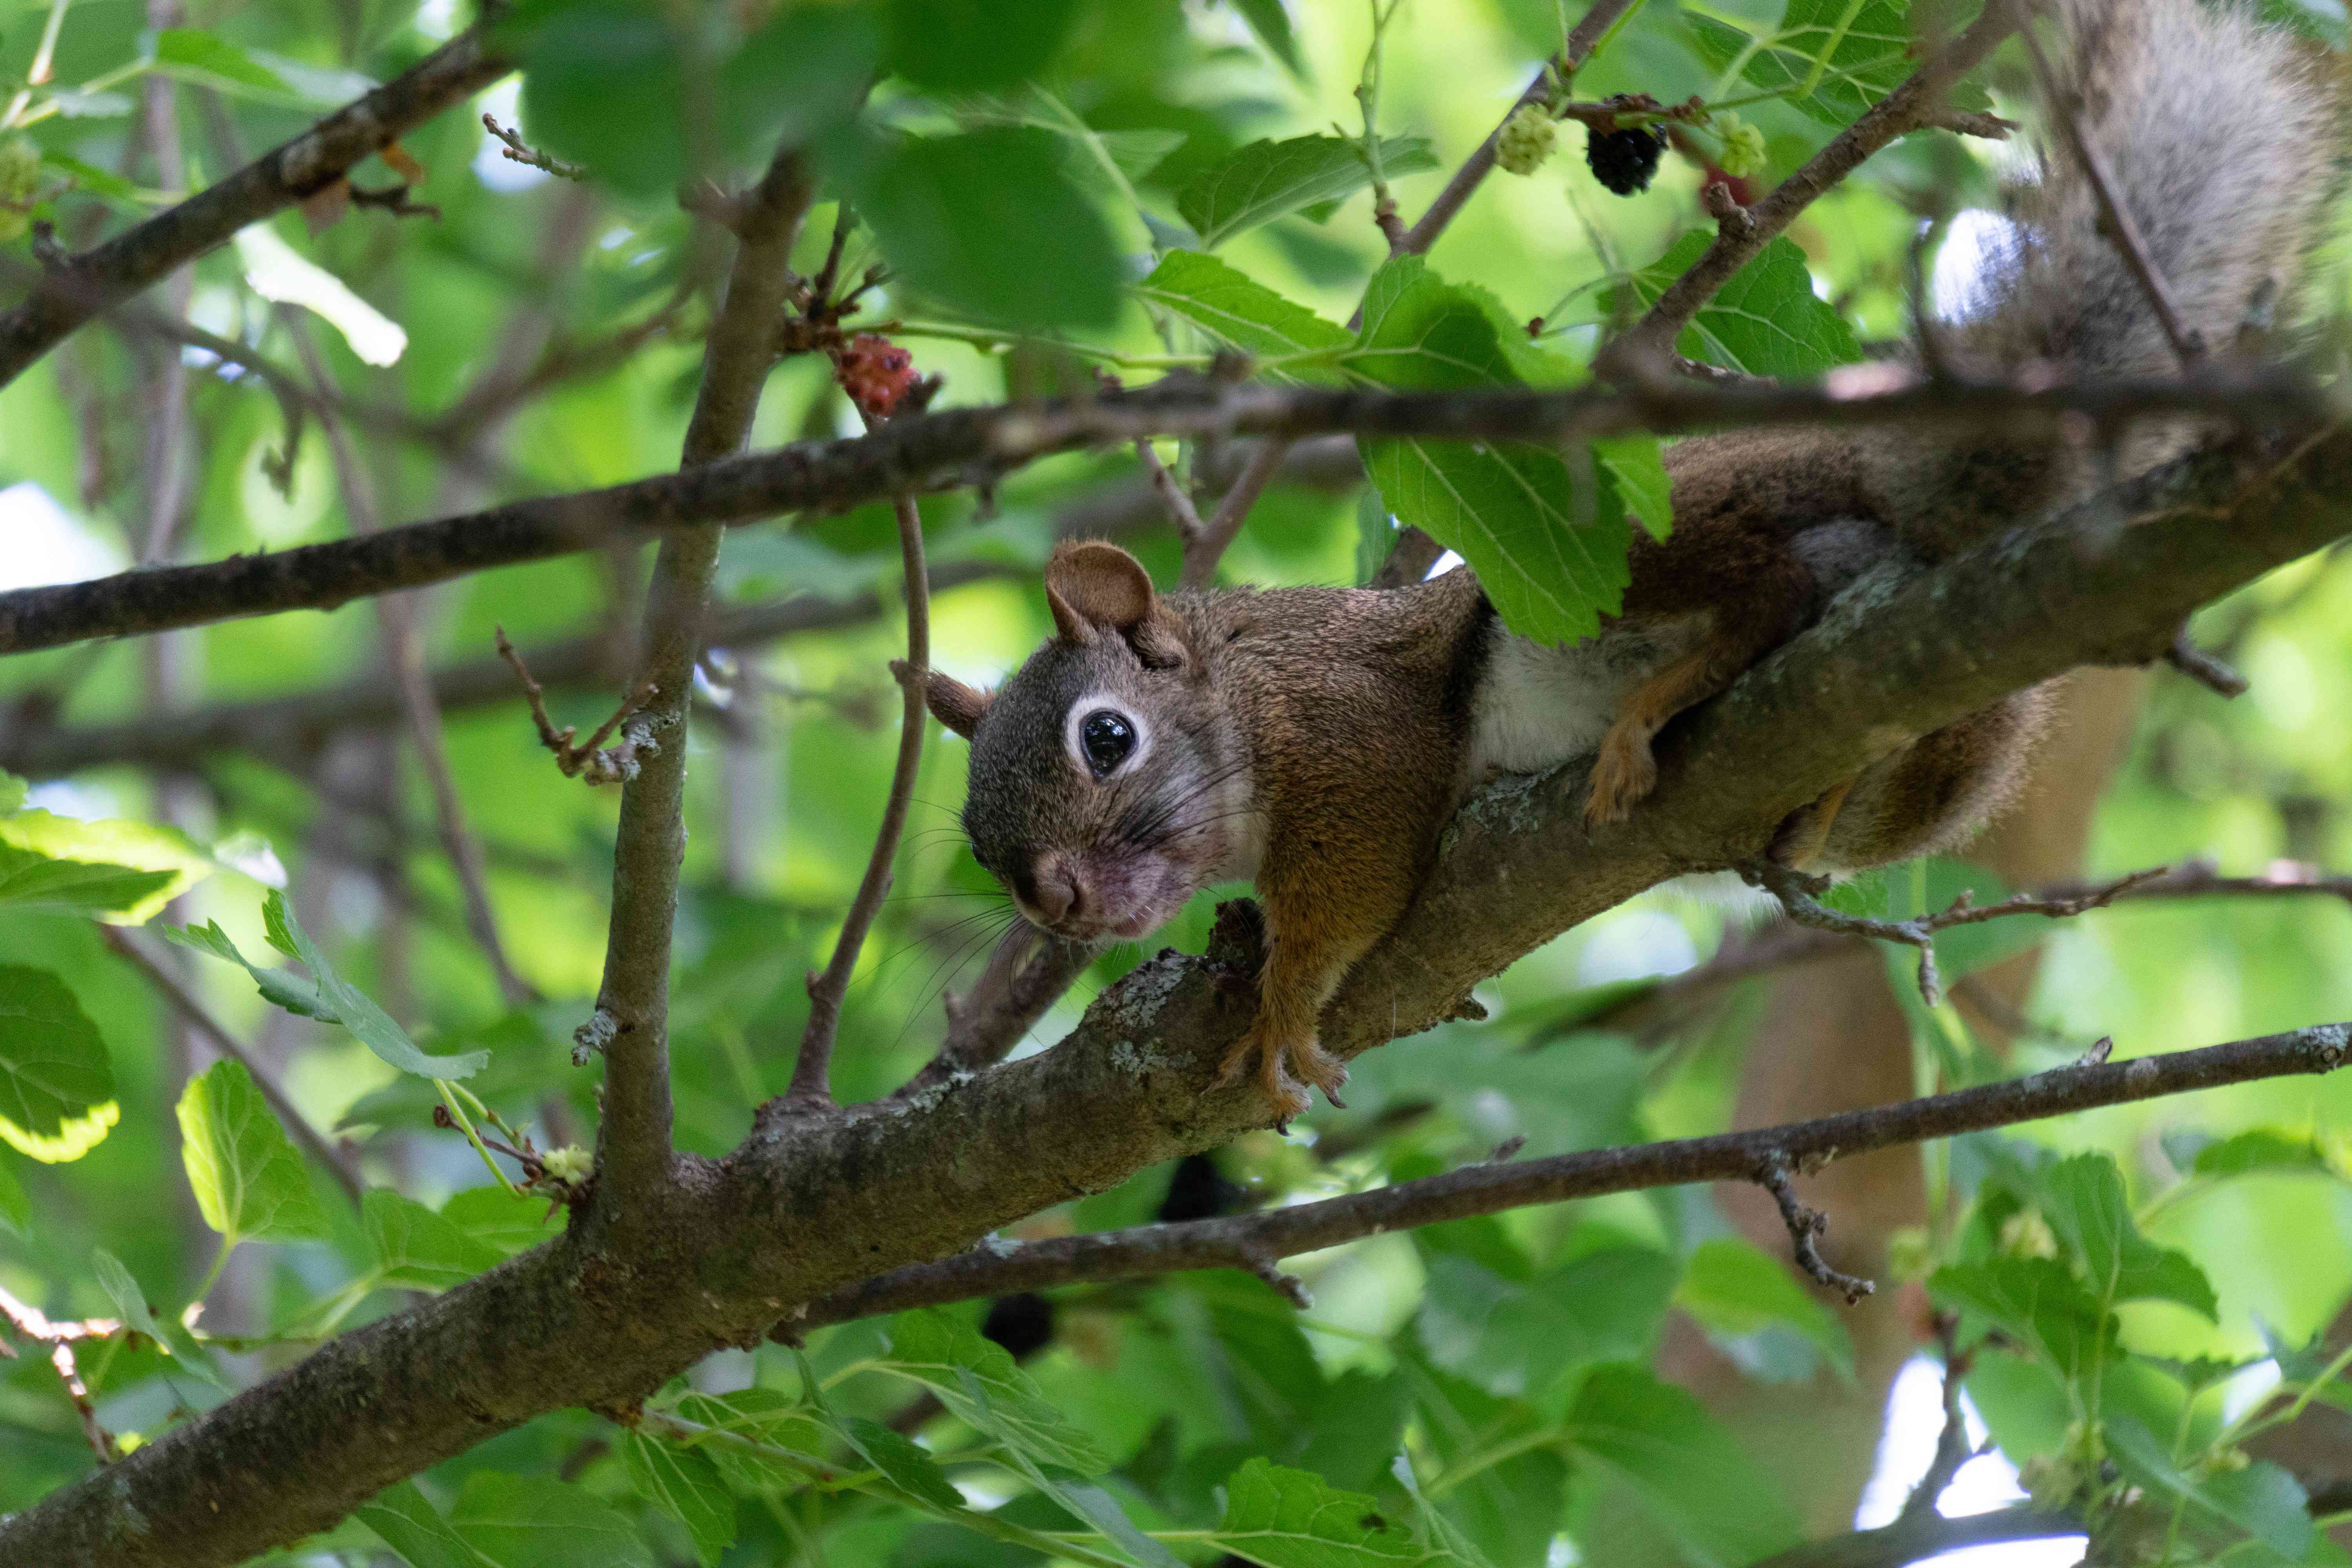 squirrel peeks out from tree branch